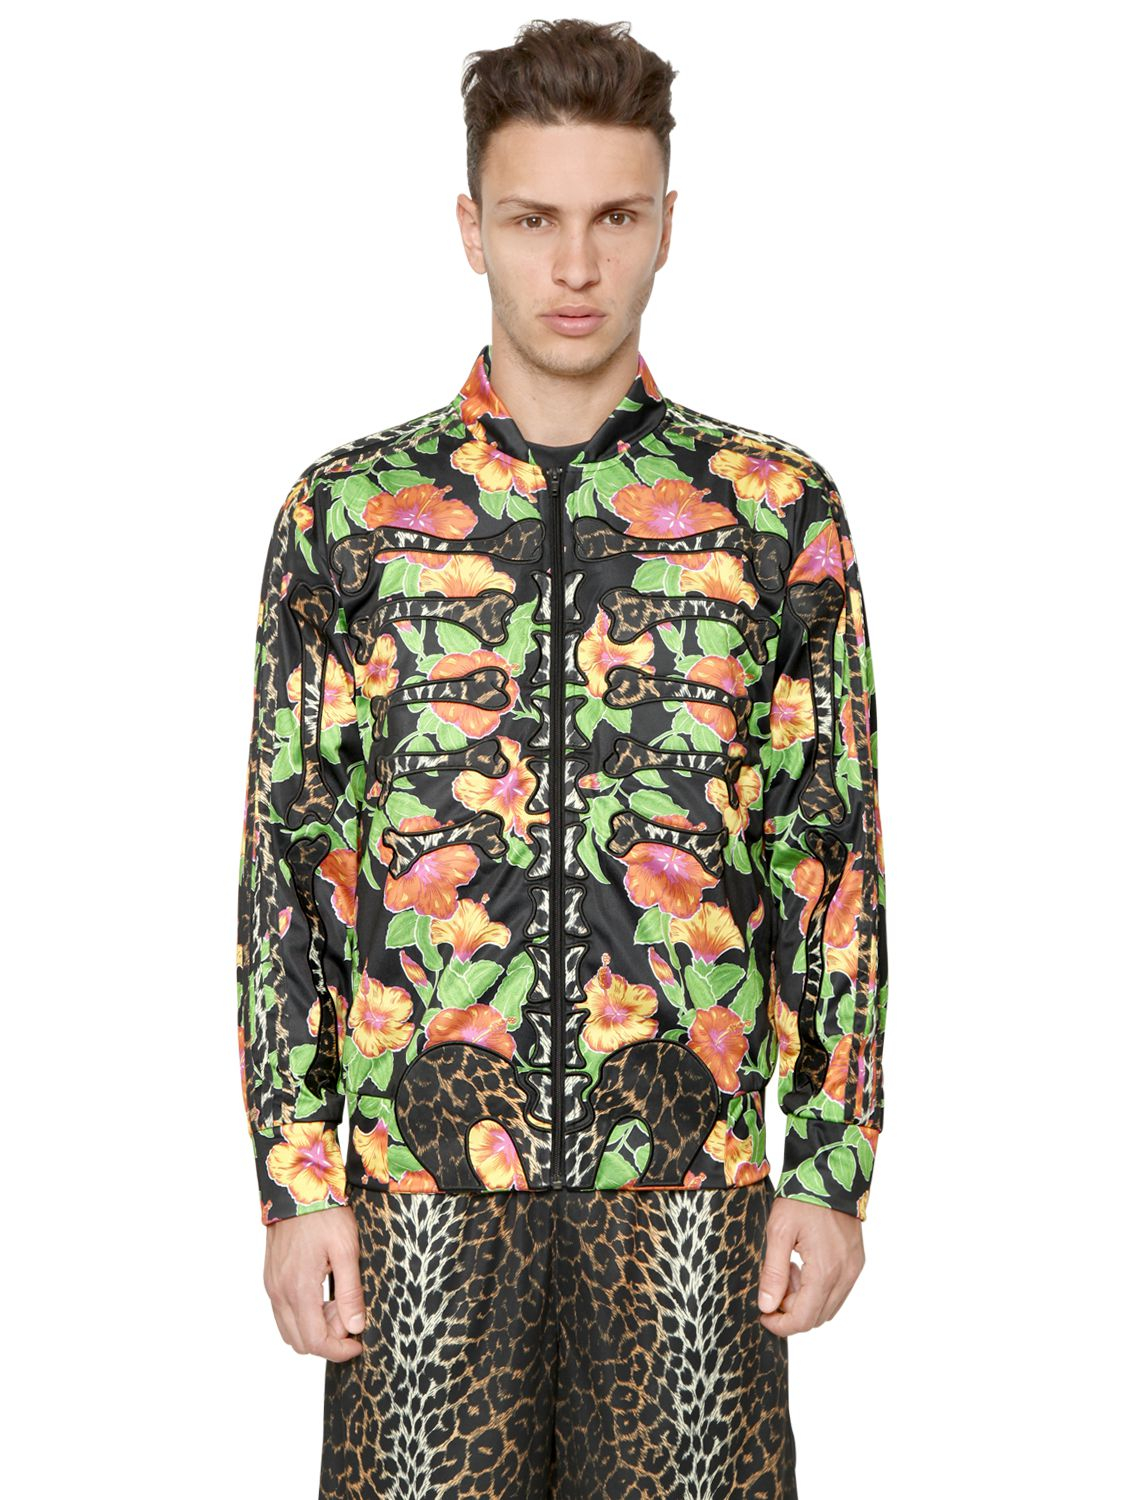 4c9c0f59f246 Lyst - Jeremy Scott for adidas Floral Printed Track Top in Green for Men